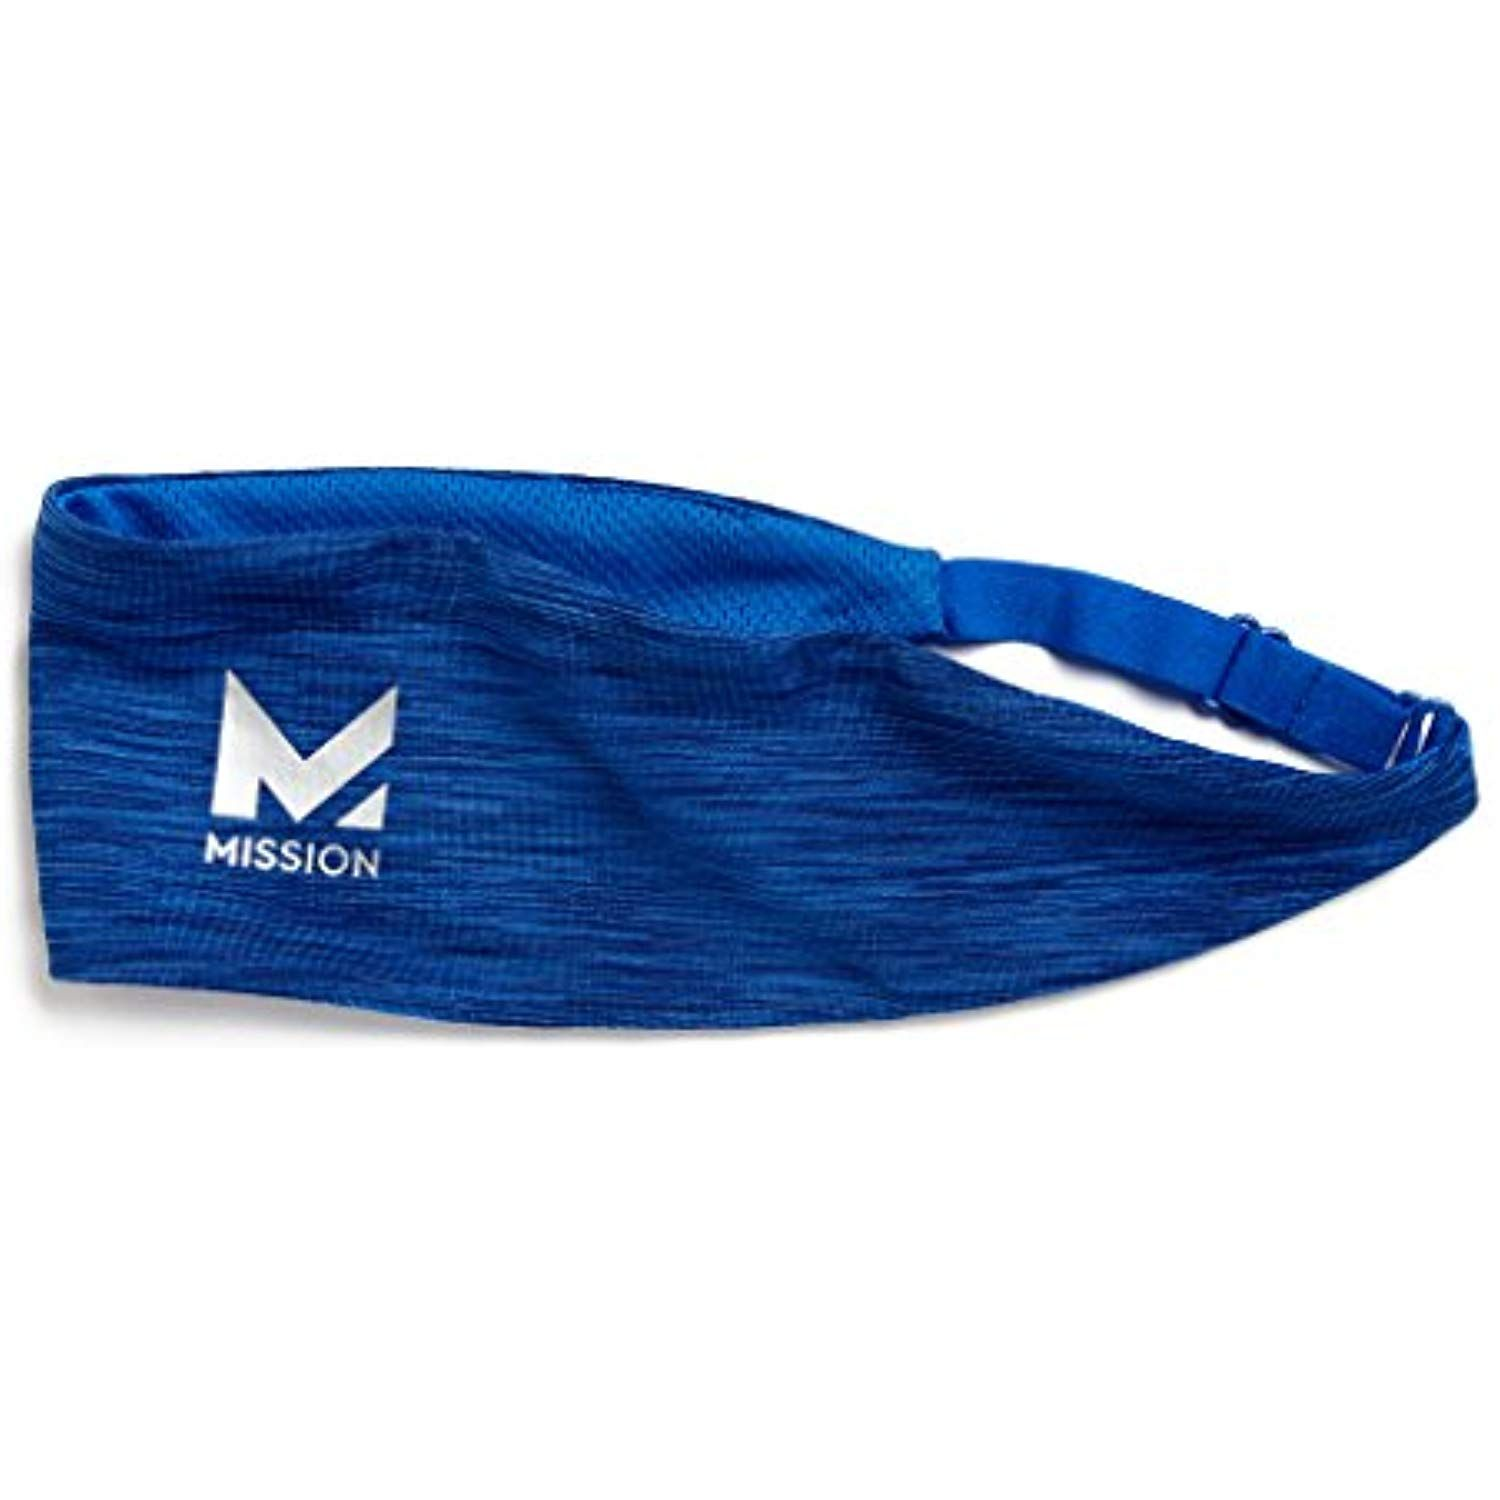 Mission Vaporactive Cooling Lockdown Headband Check This